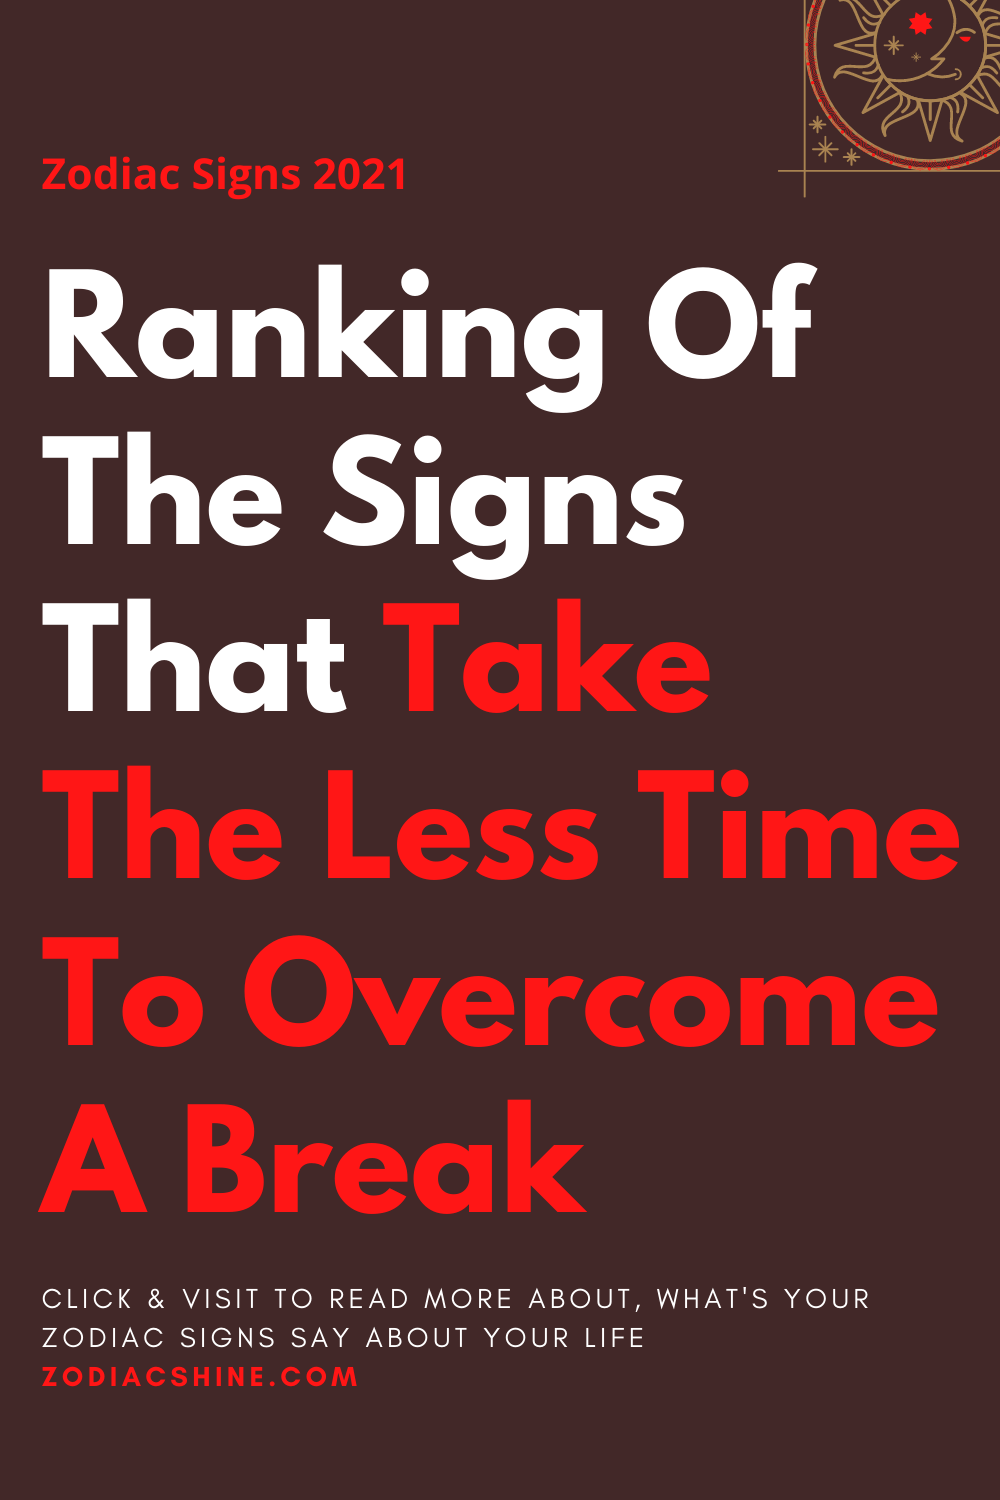 Ranking Of The Signs That Take The Less Time To Overcome A Break